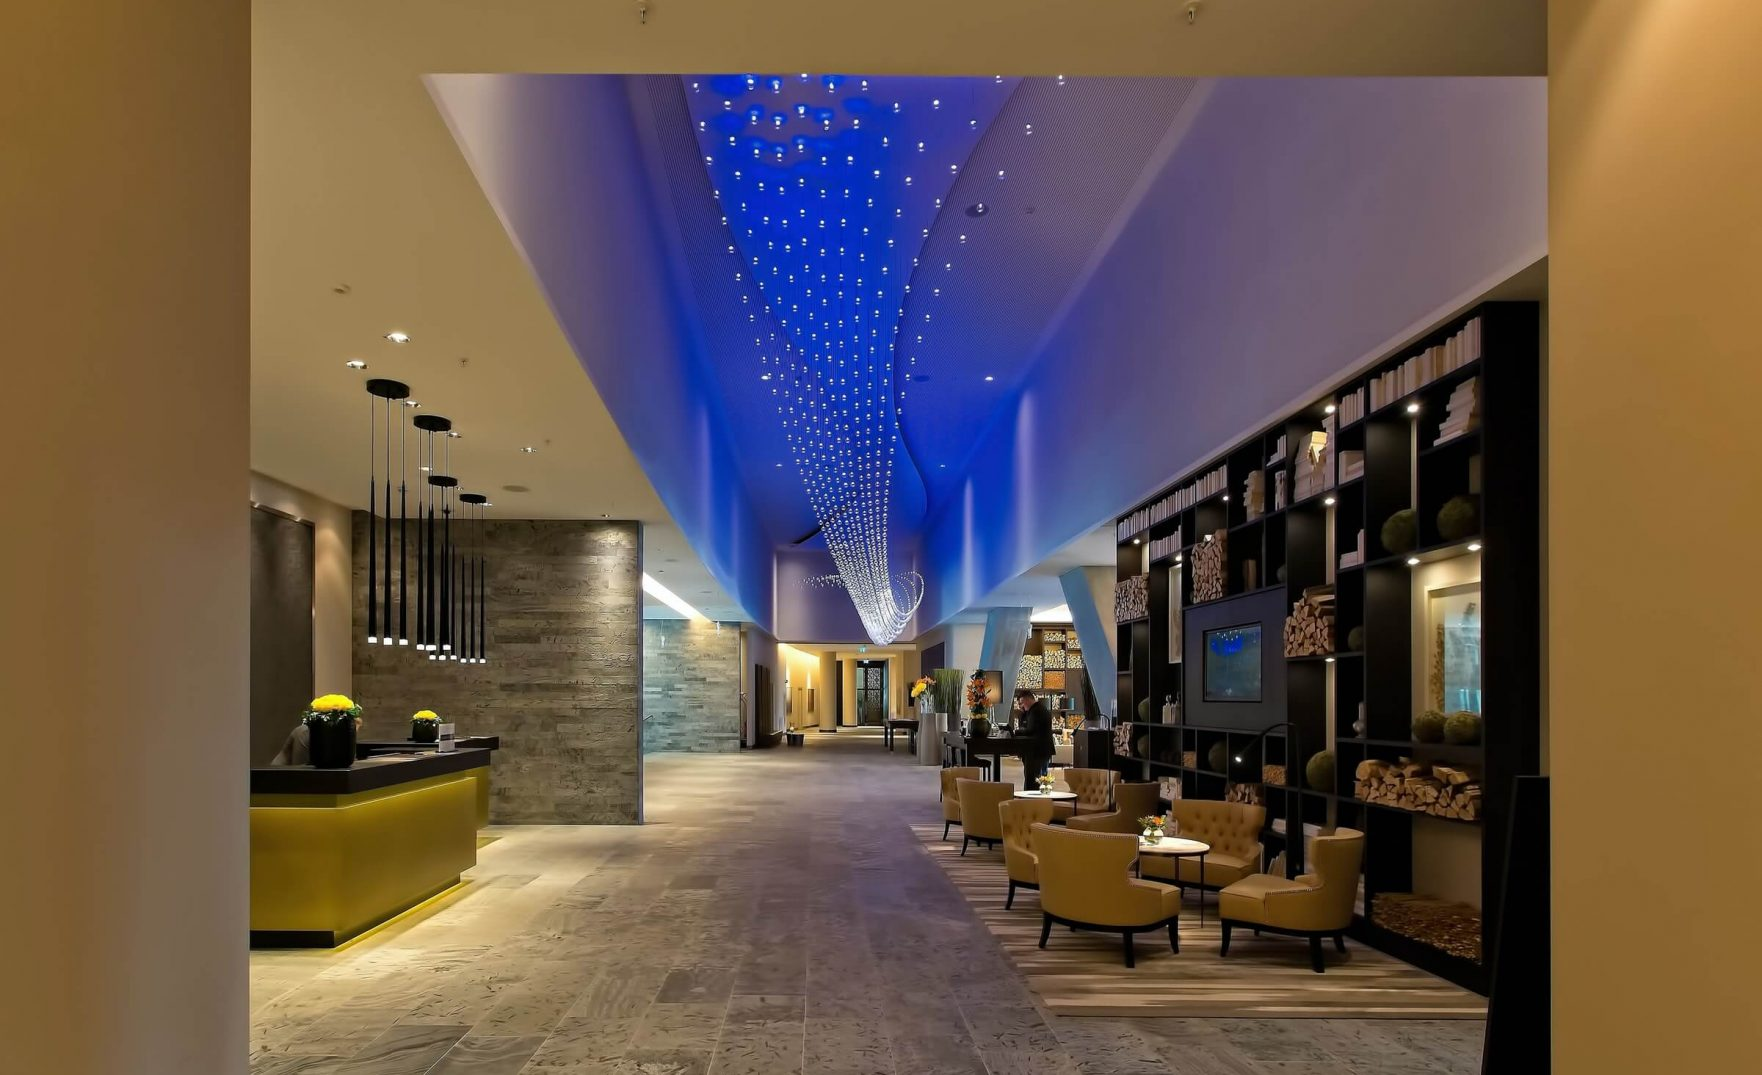 main enternce to hotel